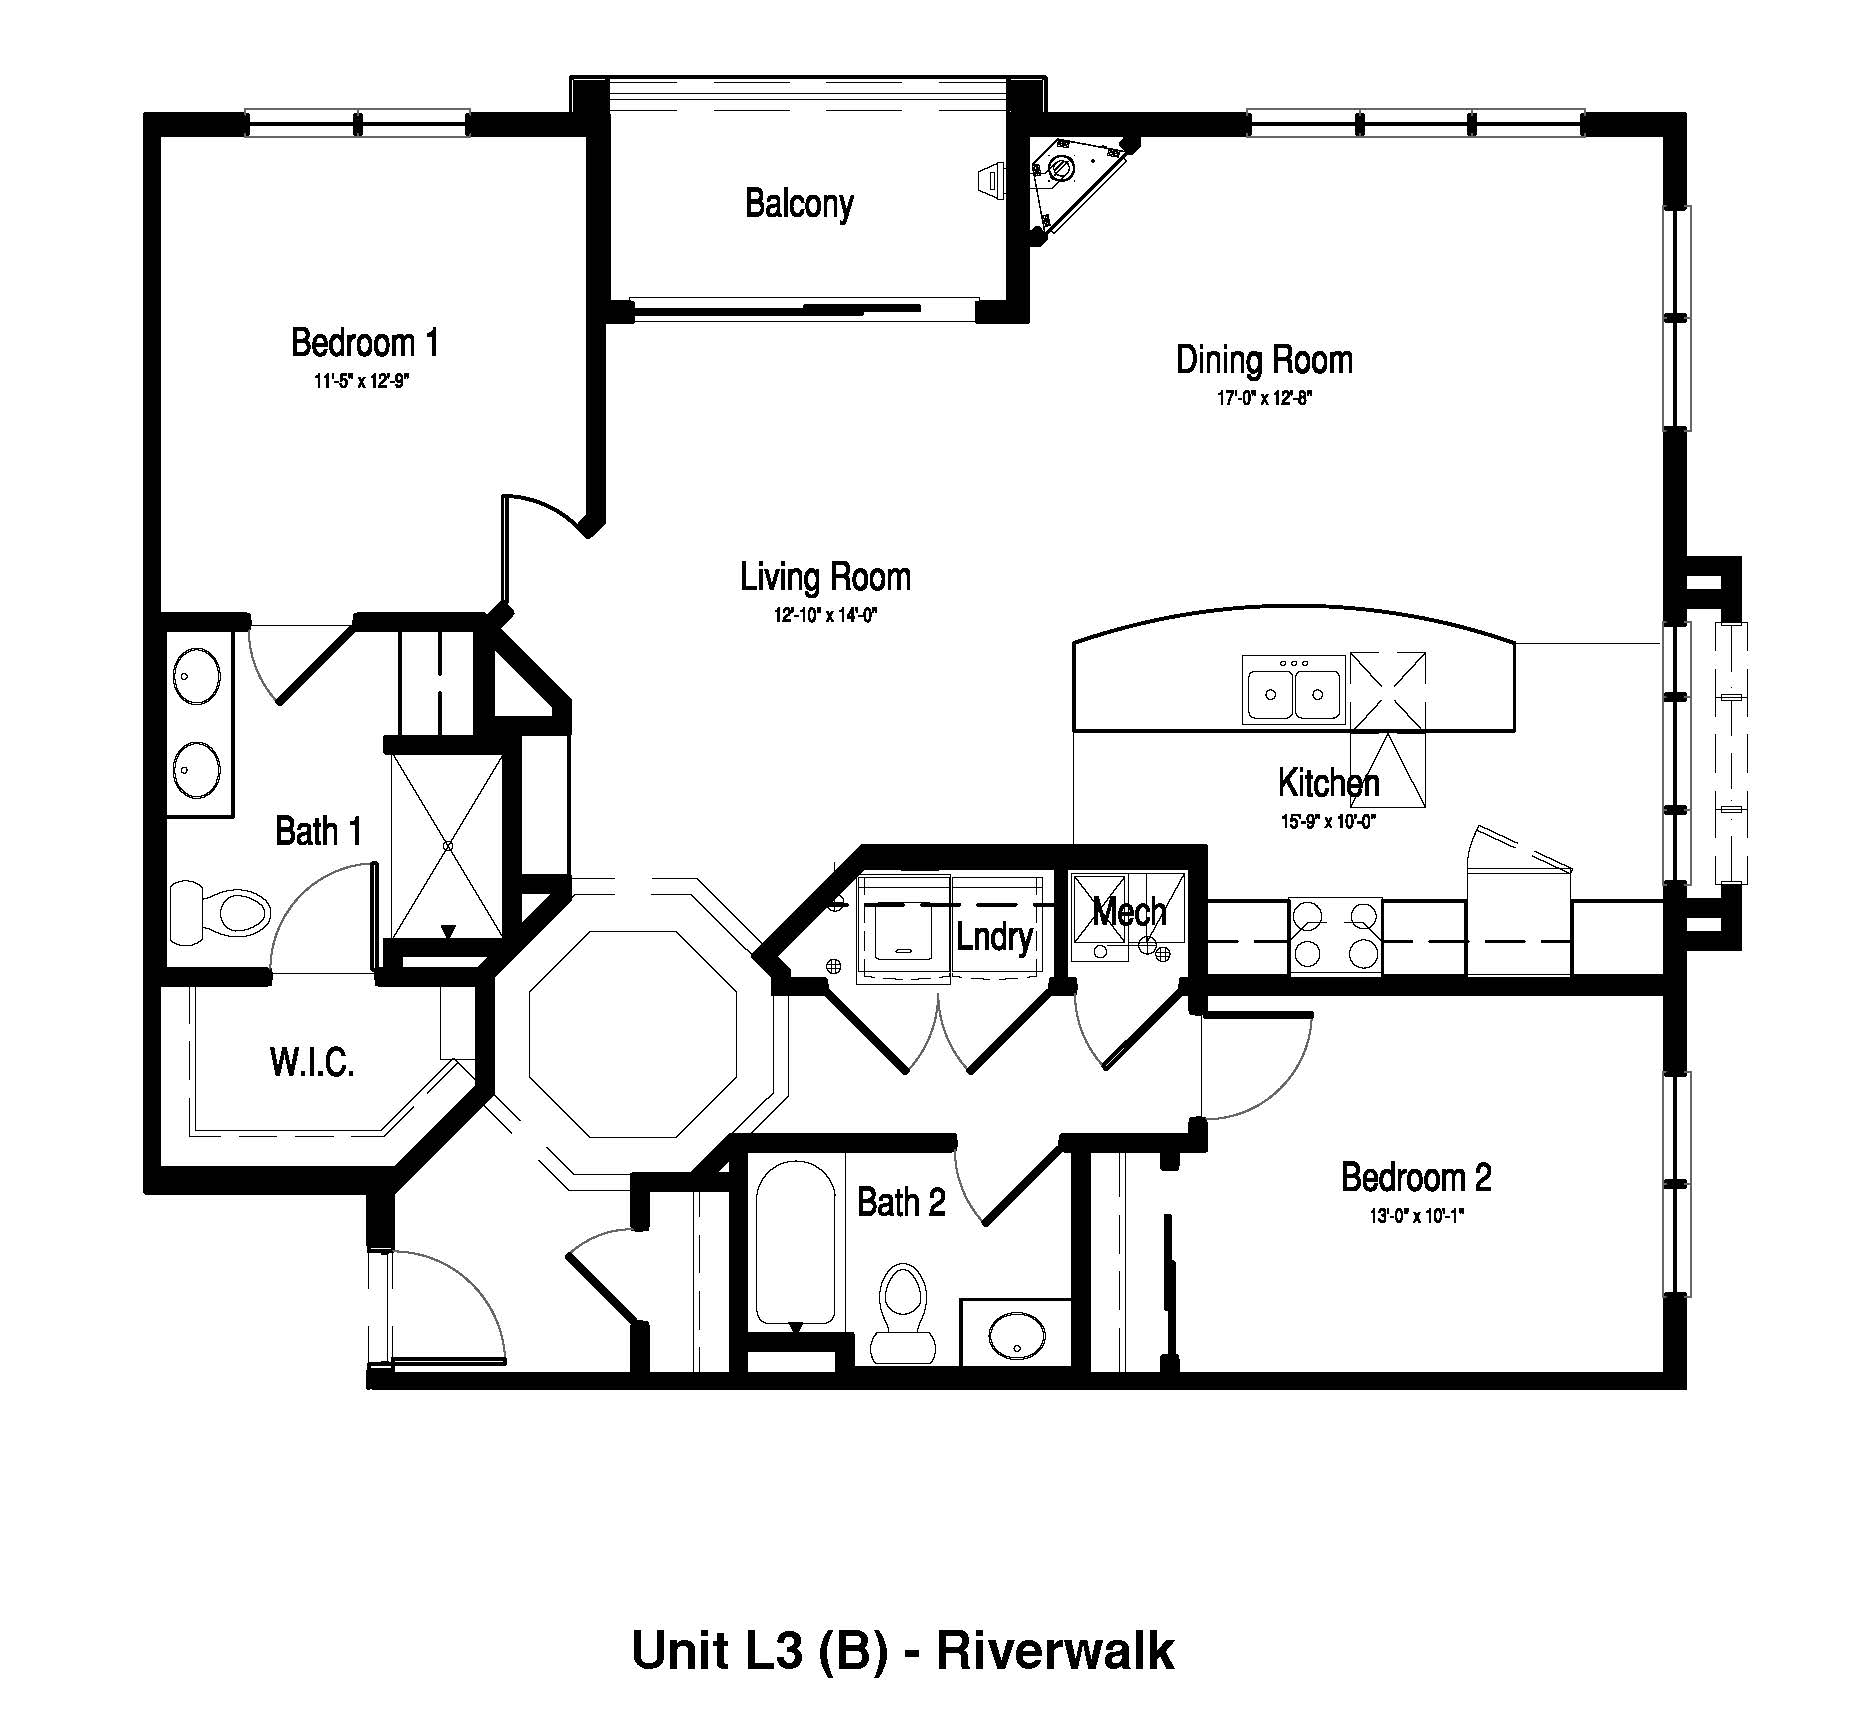 2 Bedroom, 2 Bath -  1,329 Sq. Ft. - RiverWalk on the Falls